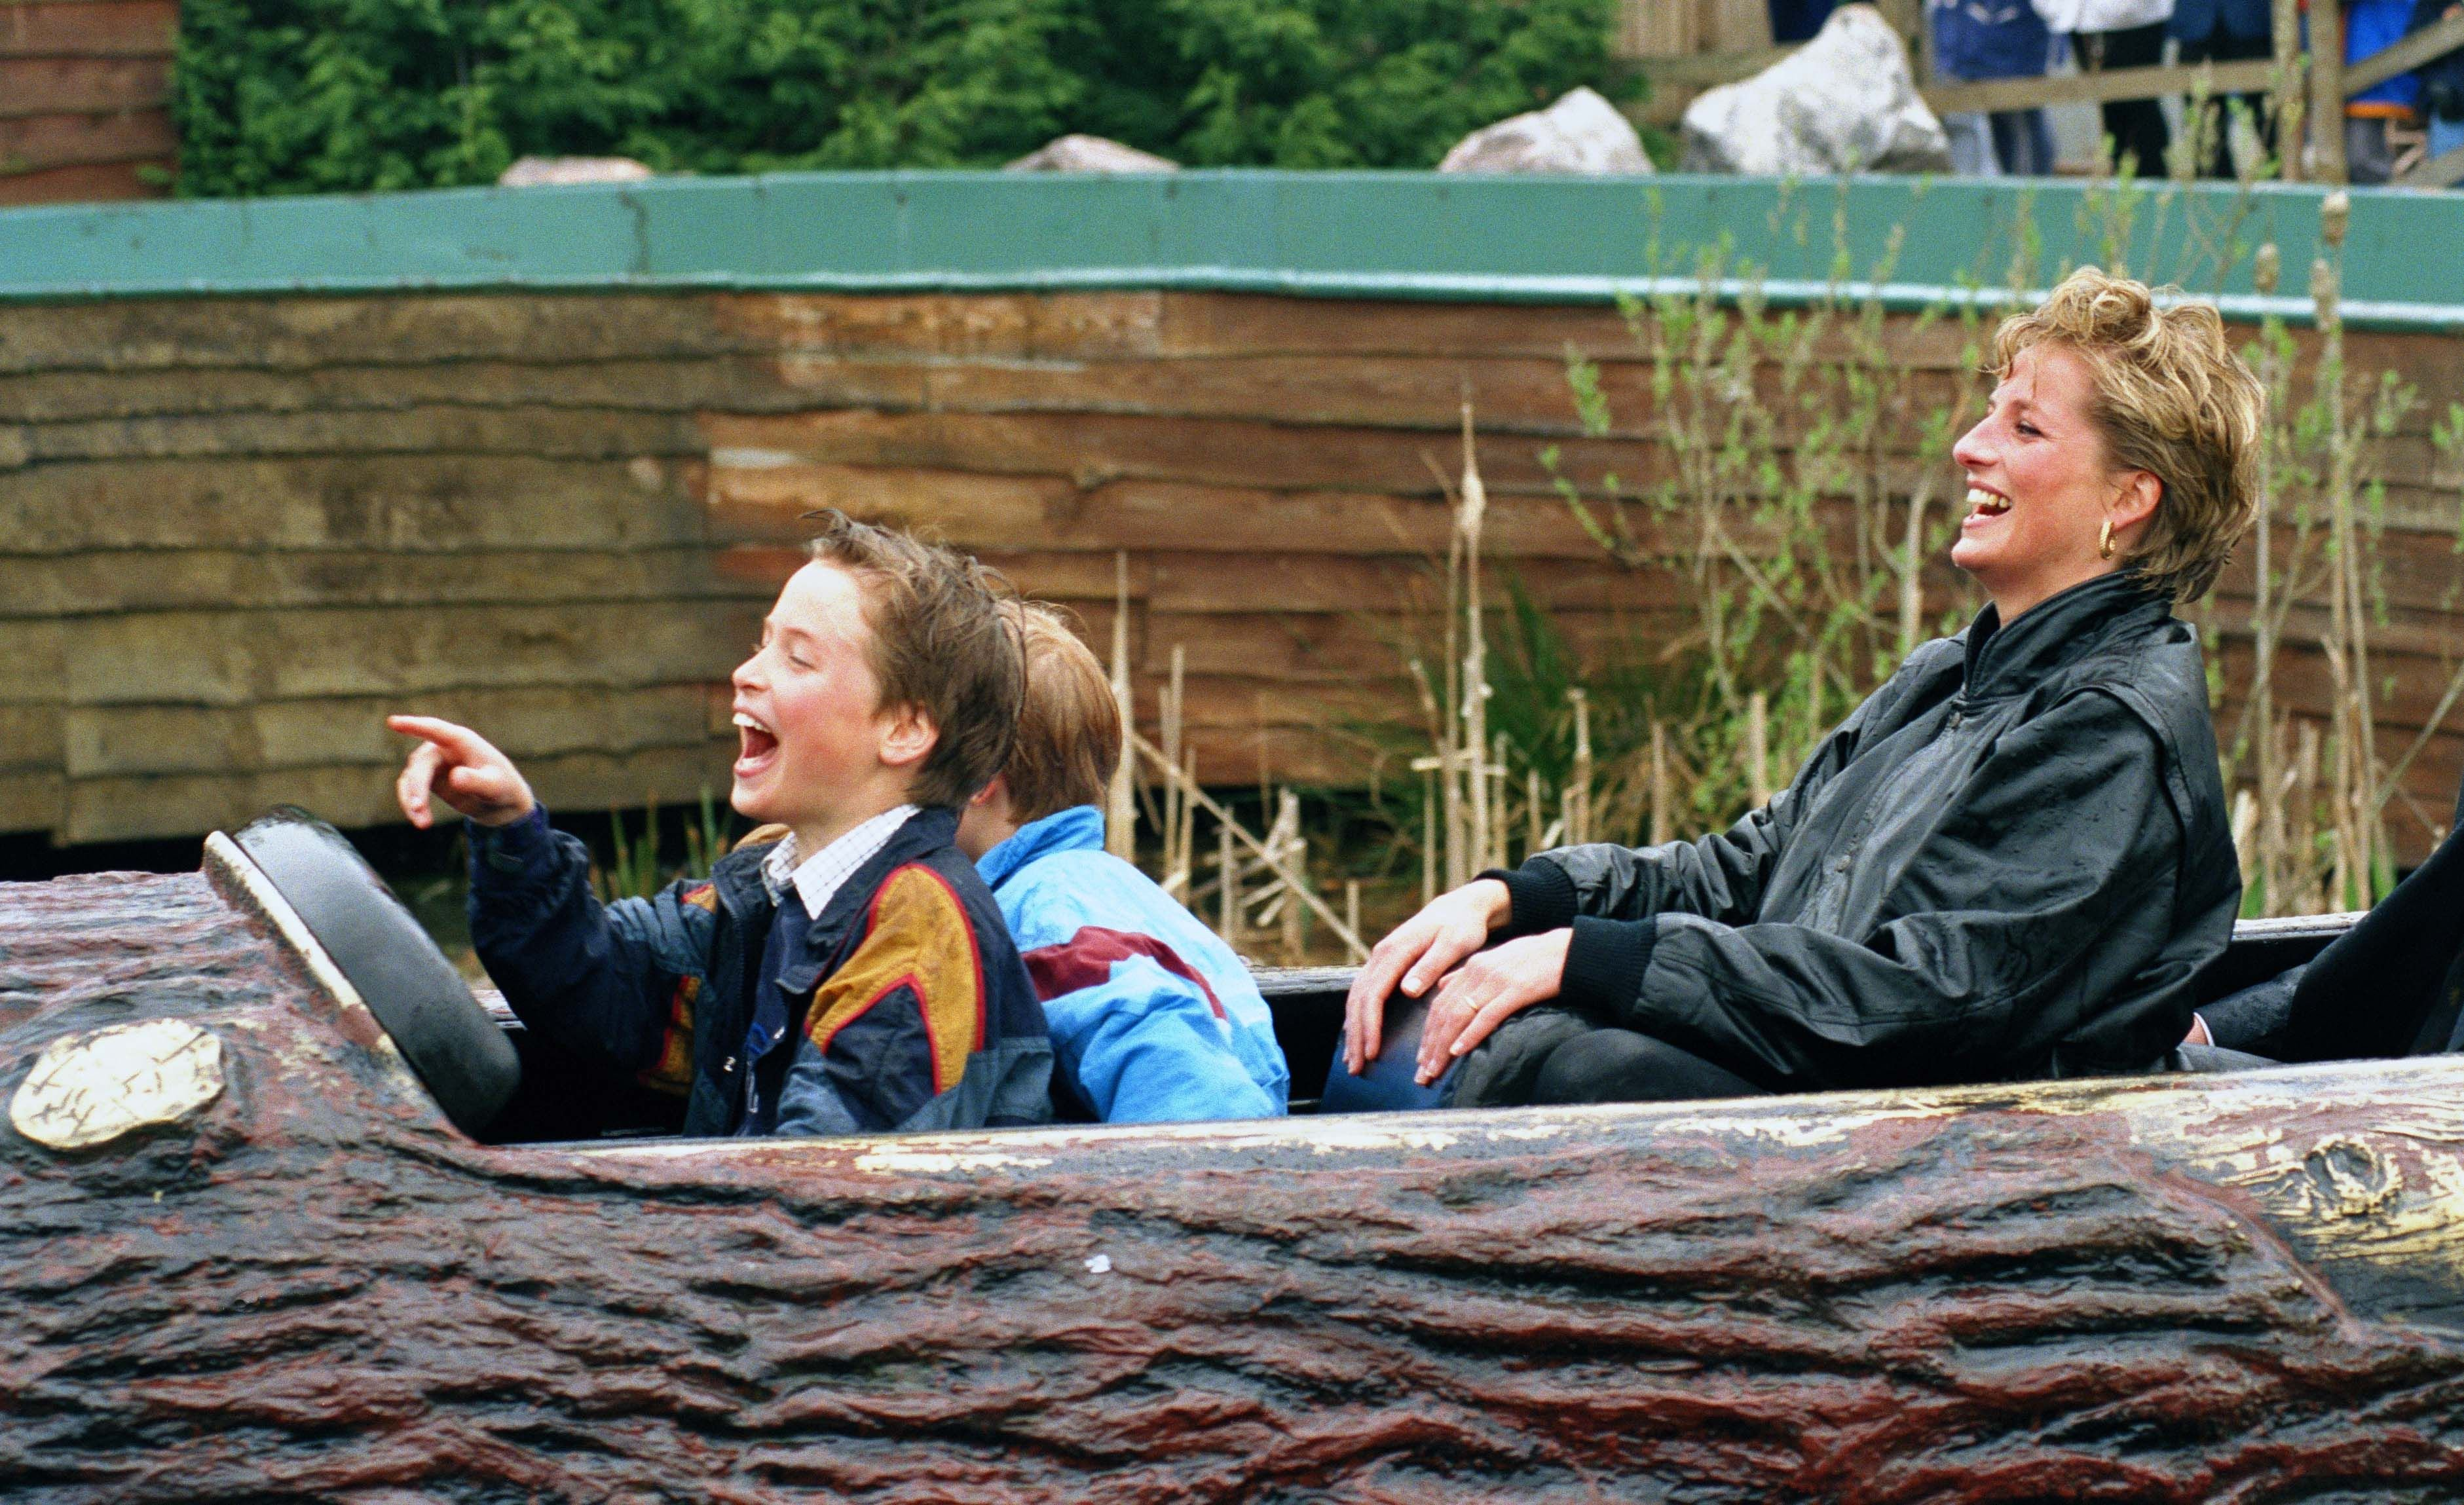 Princess Diana, Prince William, and Prince Harry at The 'Thorpe Park' Amusement Park onApril 13, 1993   Photo: Getty Images